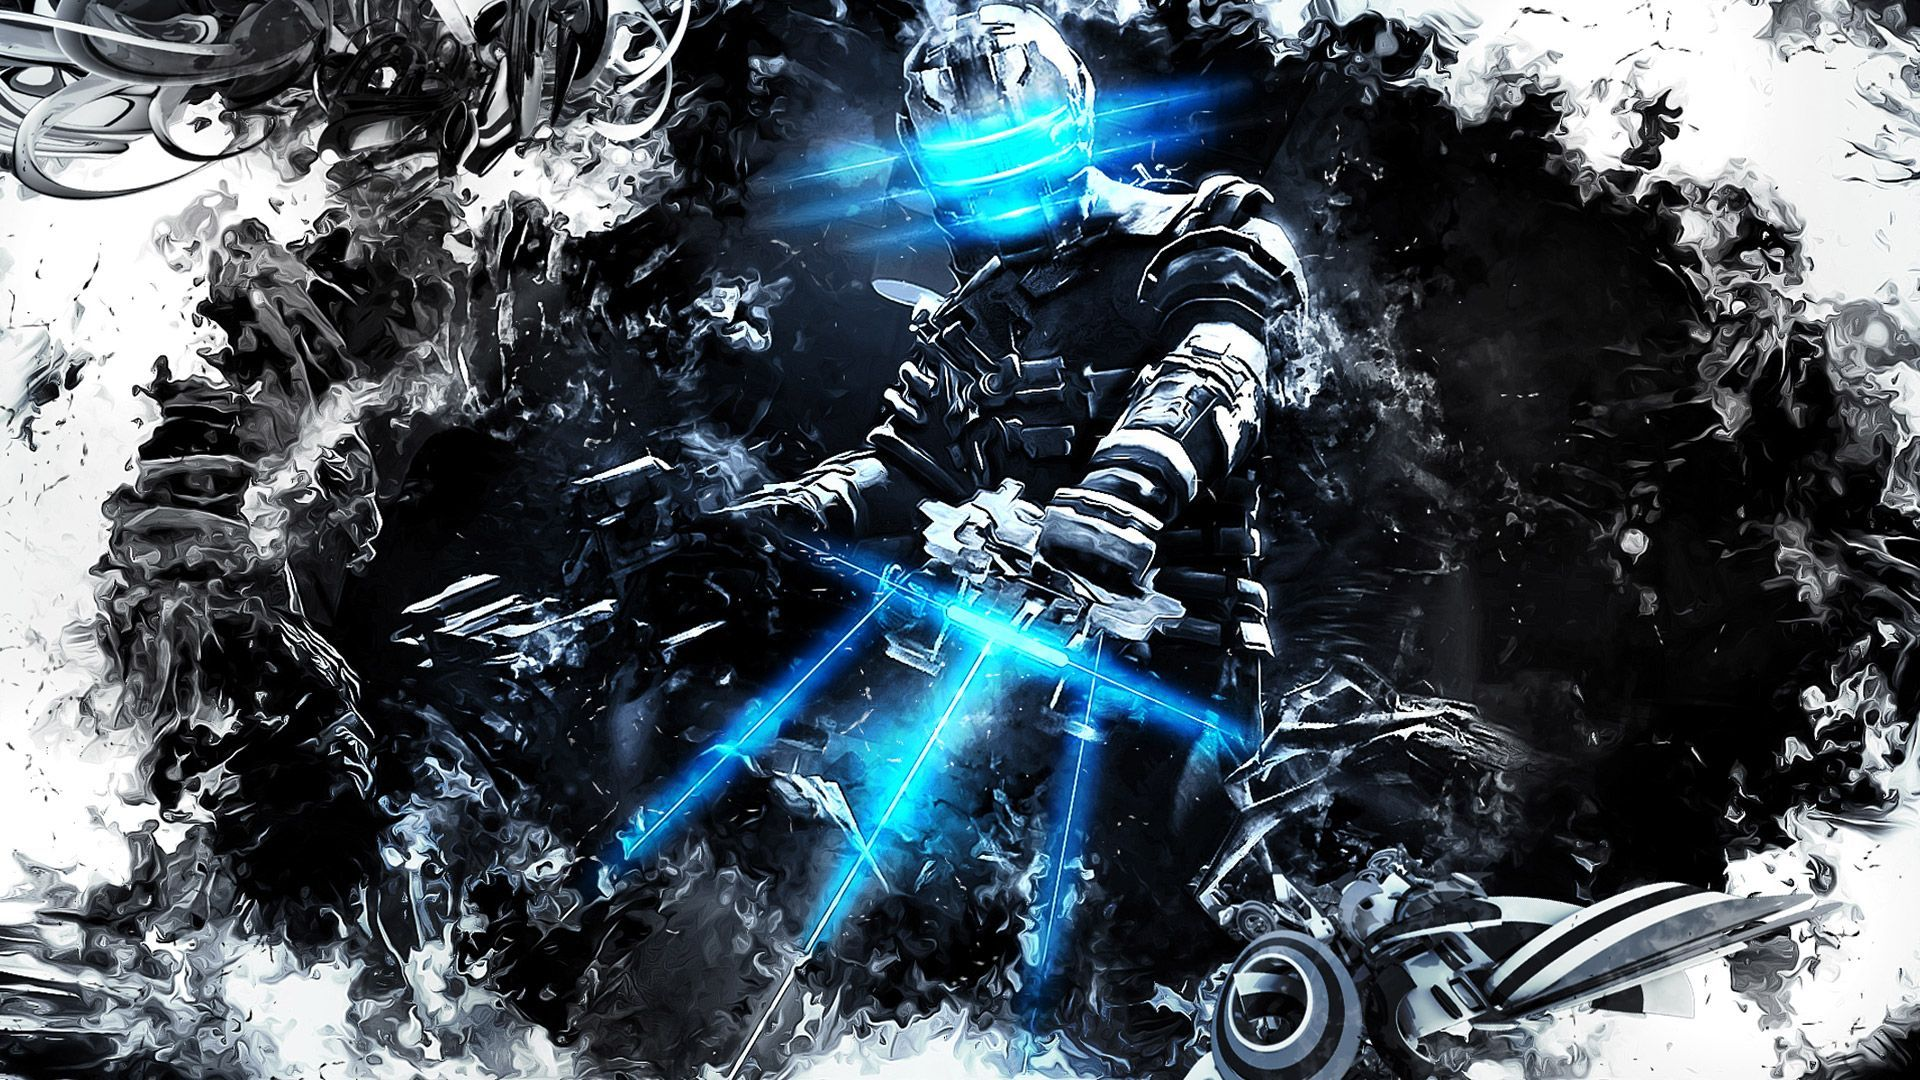 Cool Dead Space Wallpaper Hd Http Wallpapersalbum Com Cool Dead Space Wallpaper Hd Html In 2020 Dead Space Background Images Wallpapers Hd Cool Wallpapers